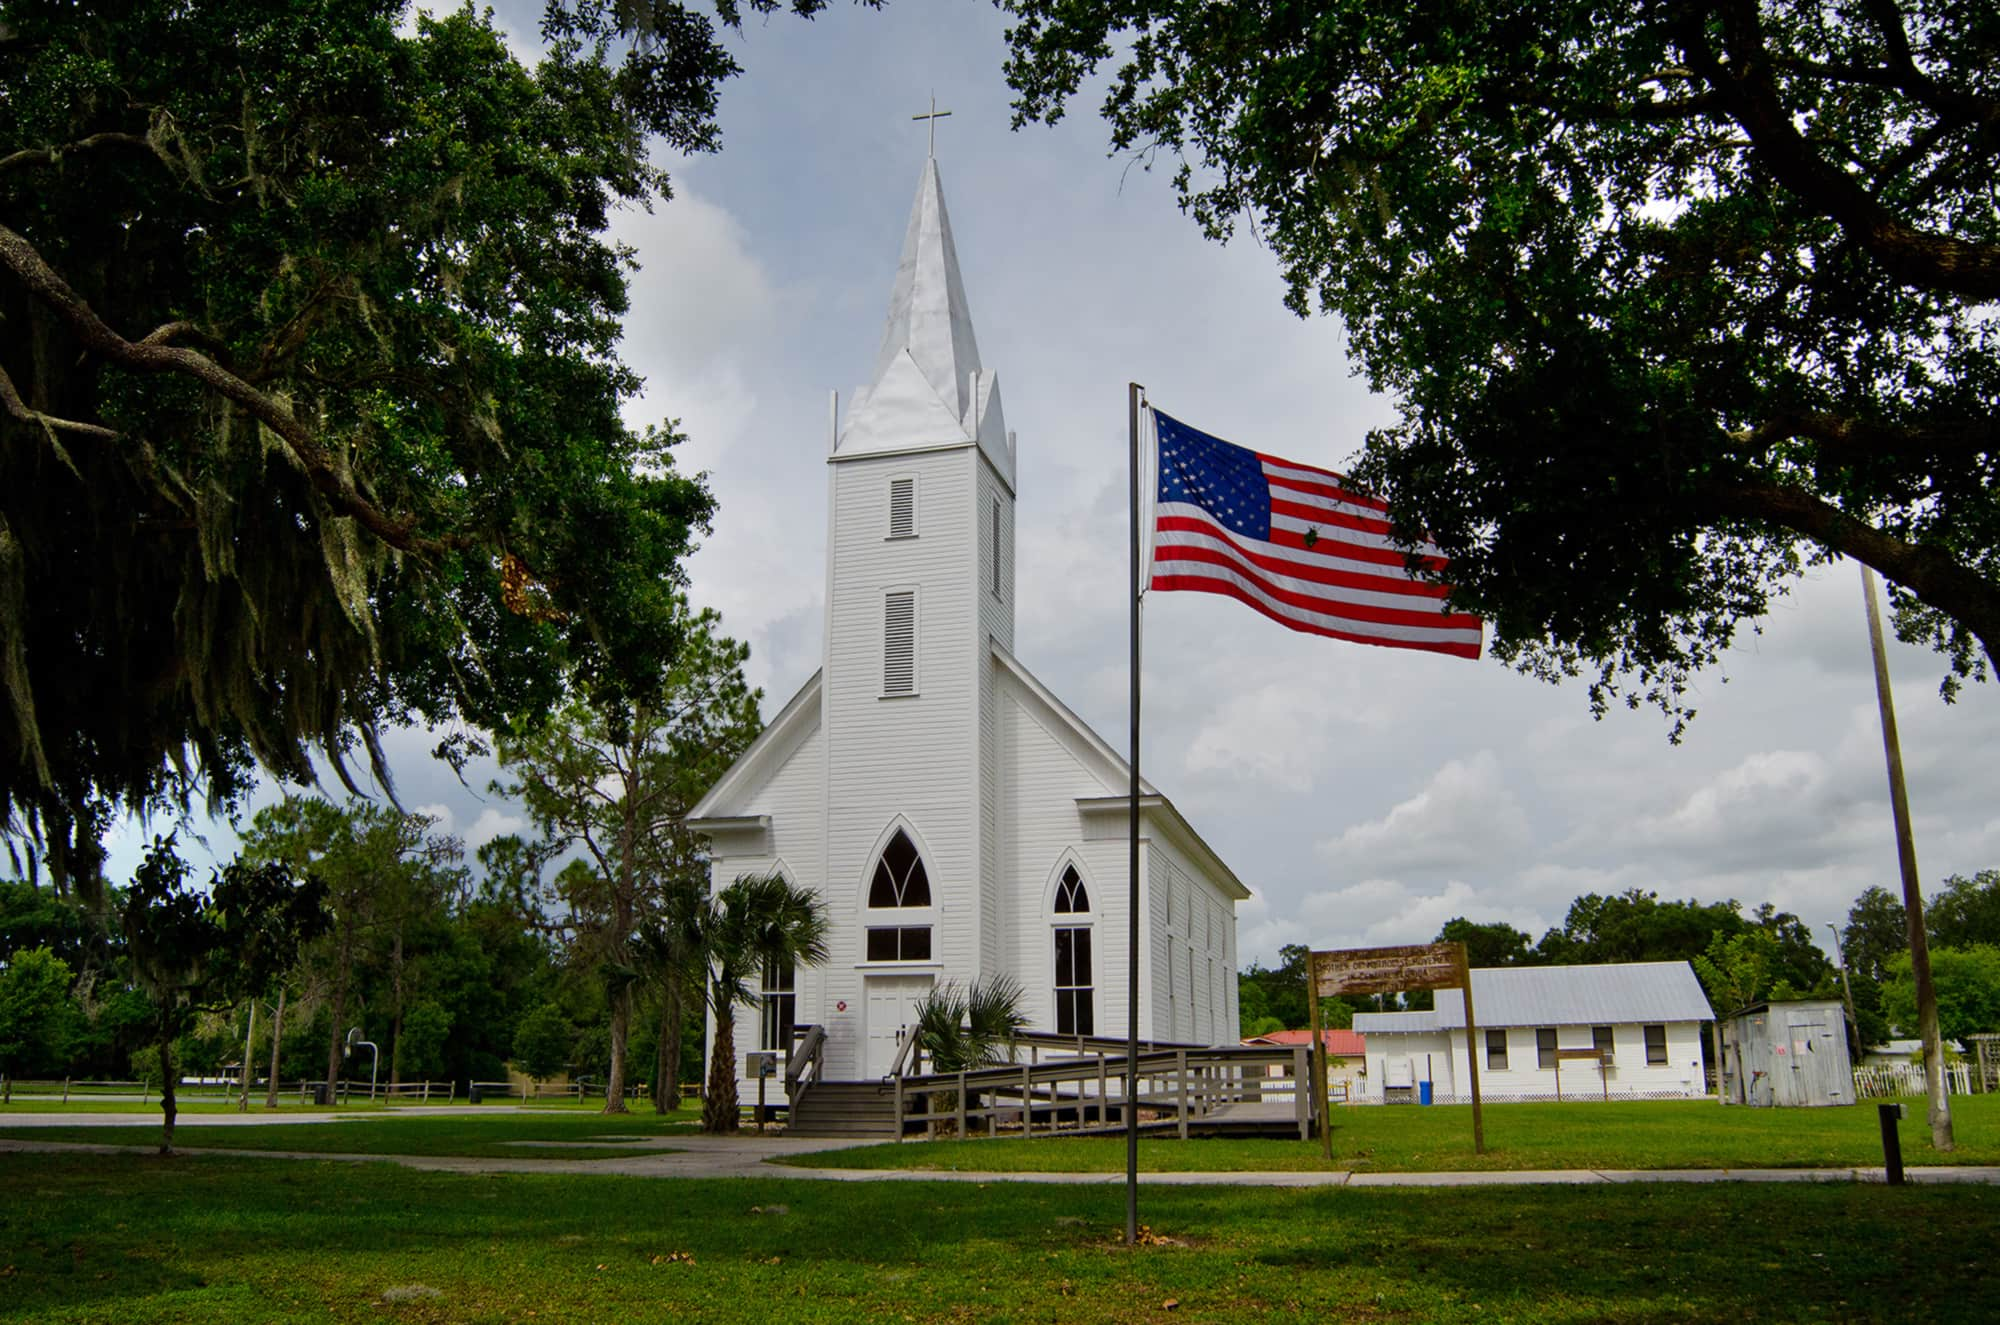 Church and US flag at Homeland Heritage Park near Bartow, FL